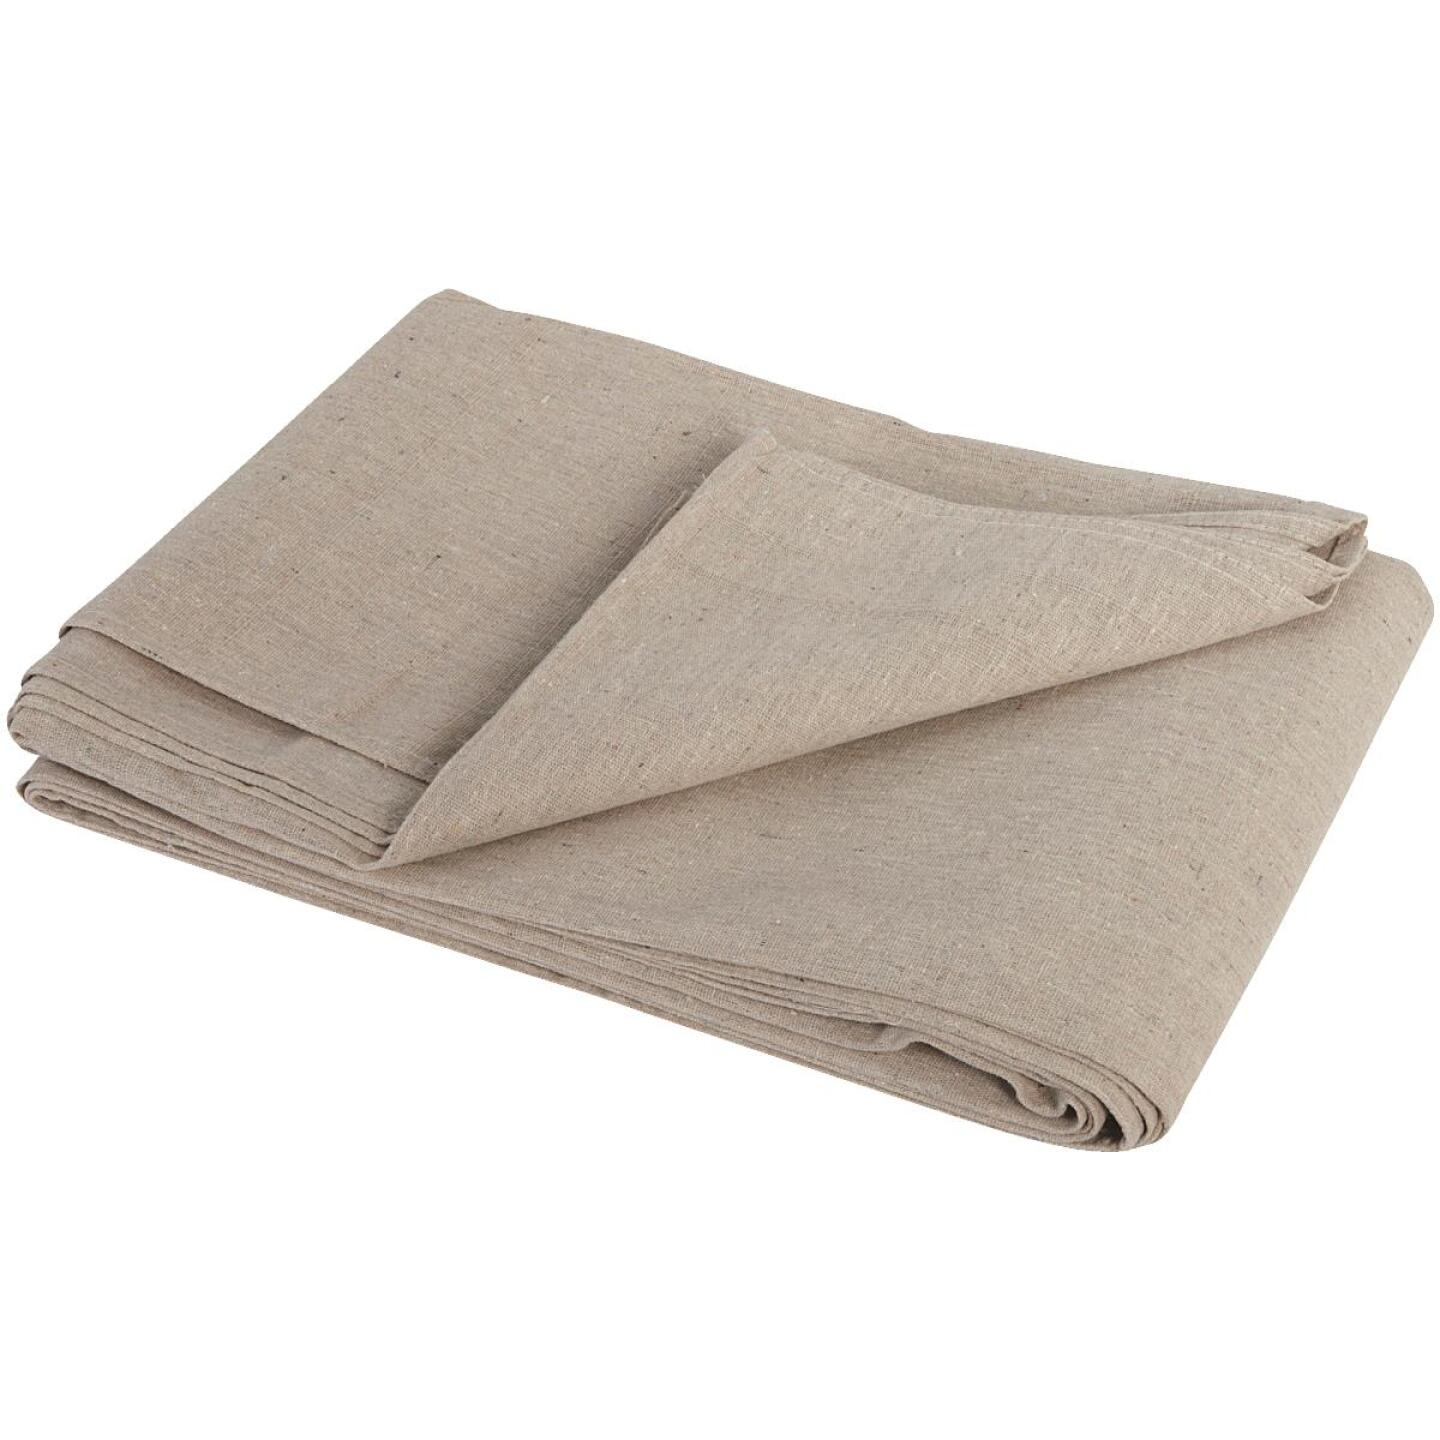 Trimaco Canvas 4 Ft. x 15 Ft. Two Layer Drop Cloth Image 2